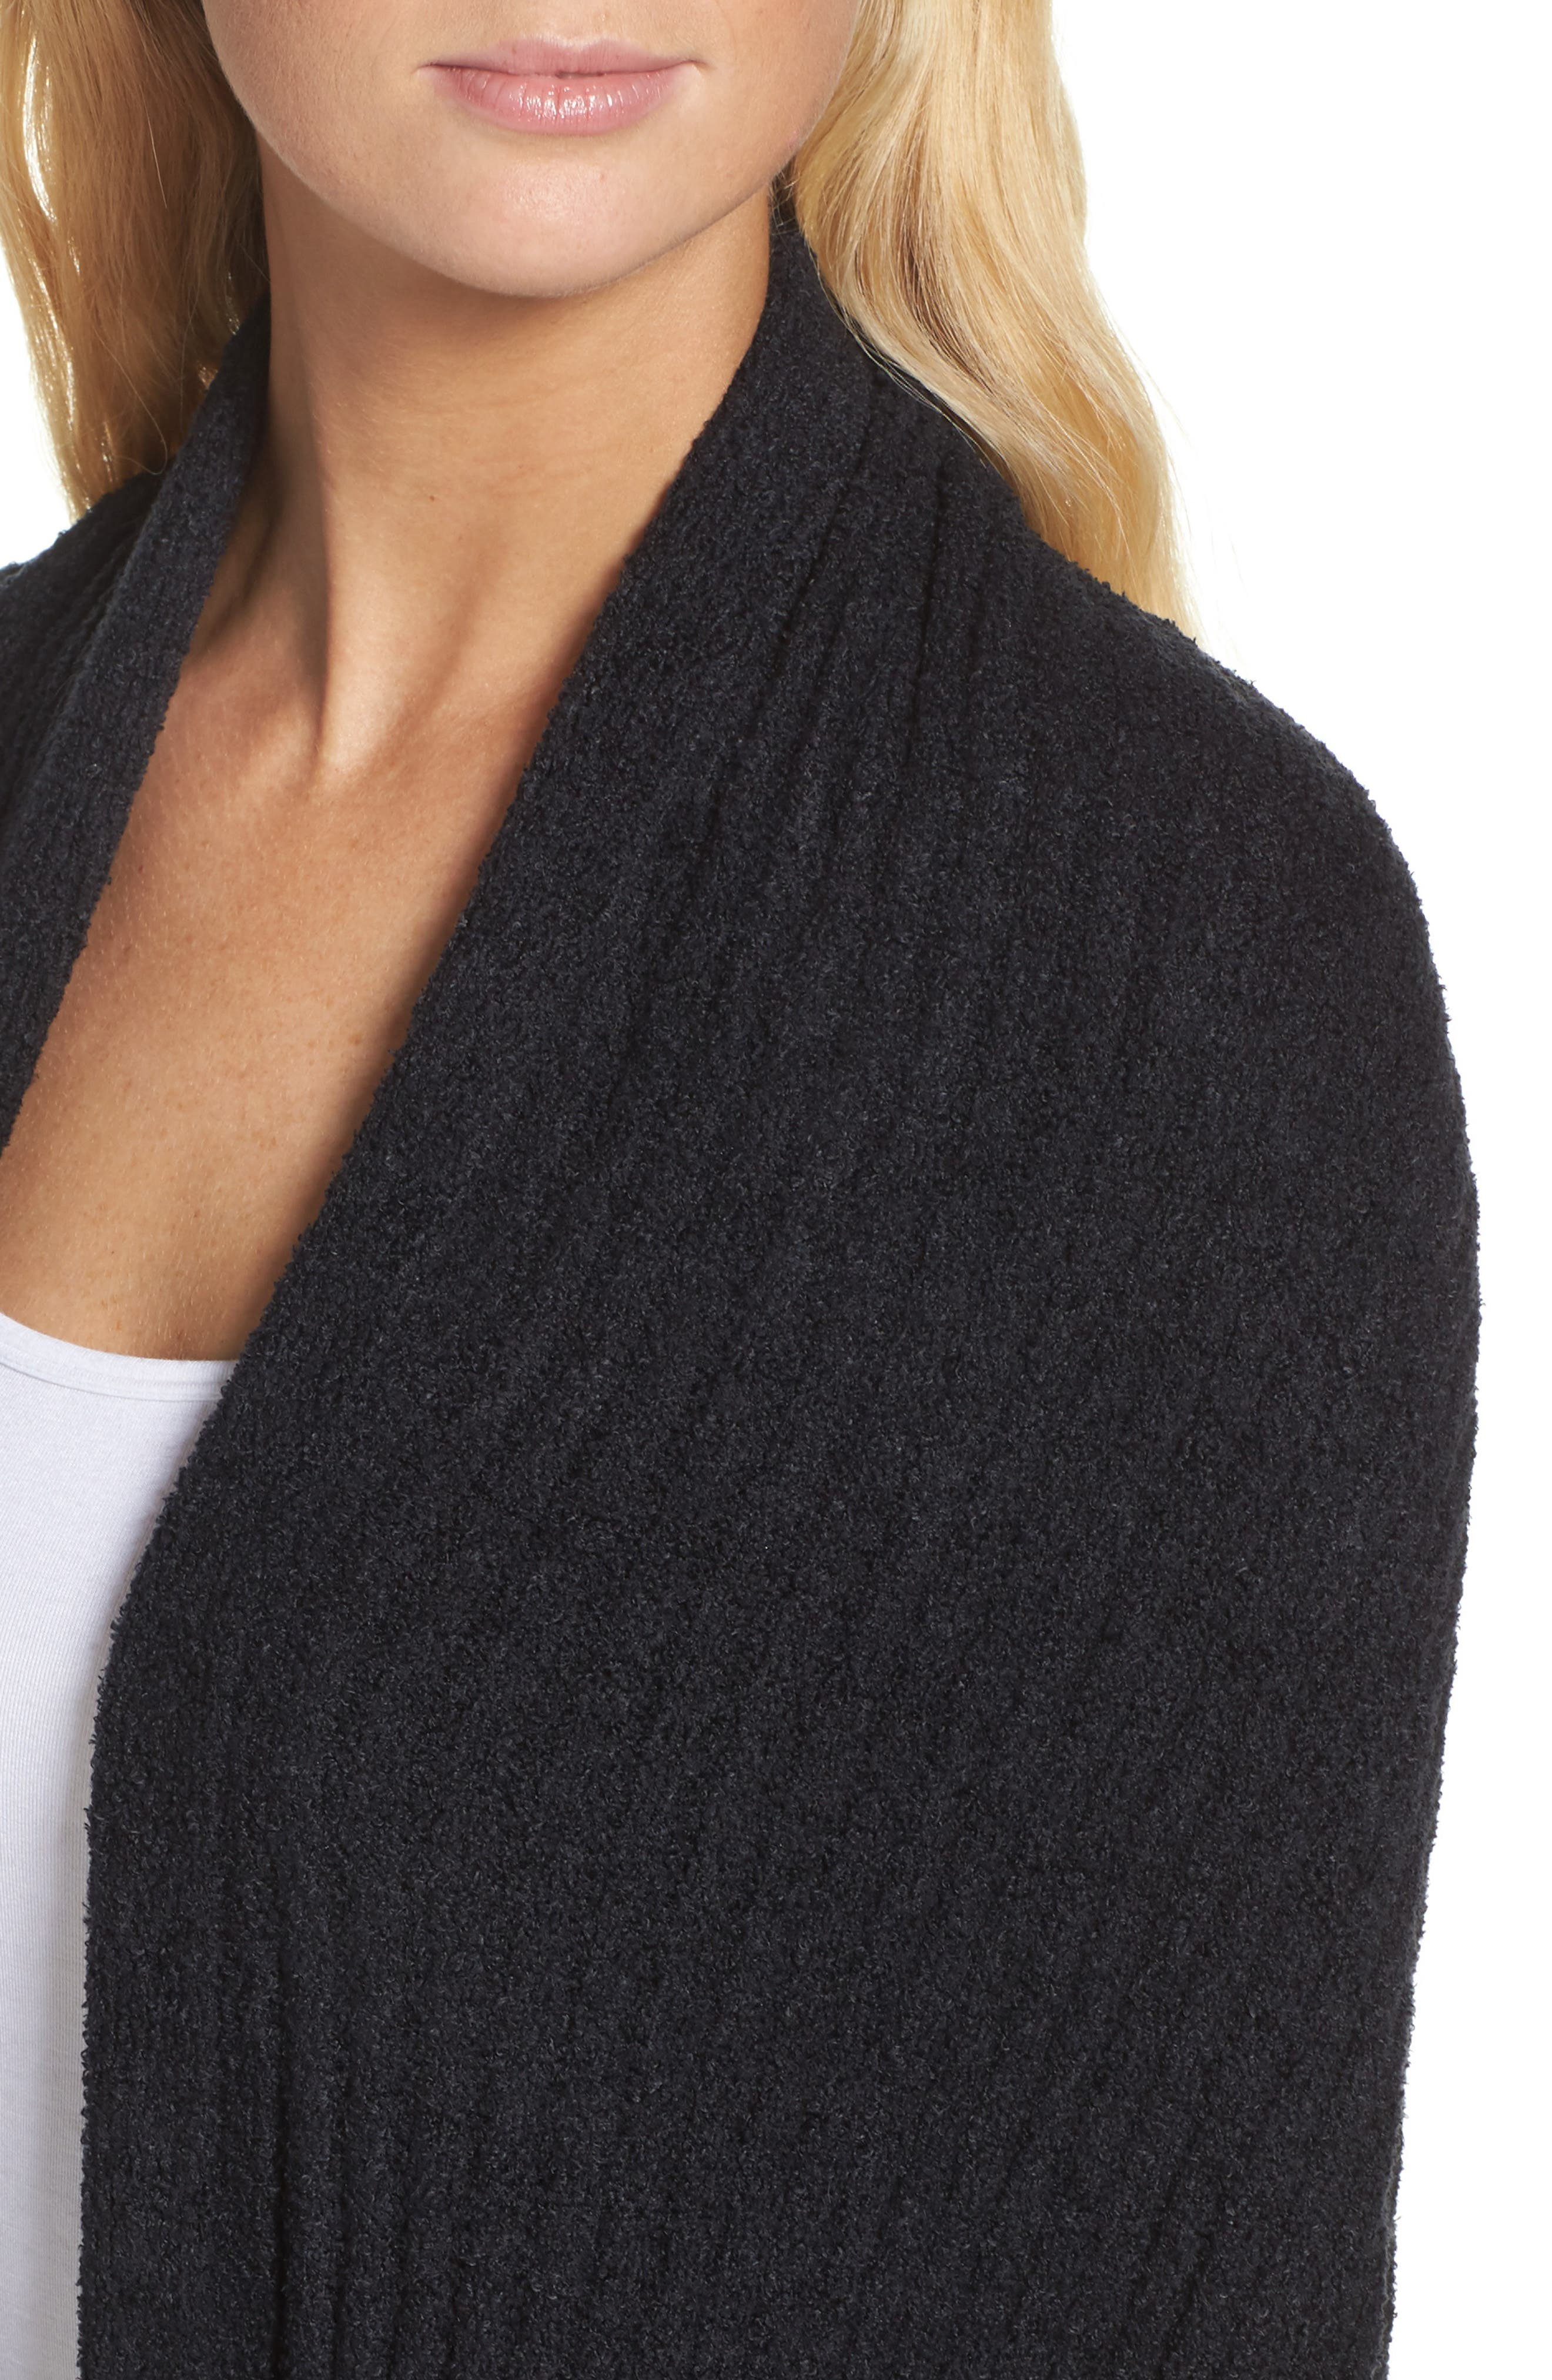 Cozychic Lite<sup>®</sup> Travel Shawl,                             Alternate thumbnail 5, color,                             Midnight